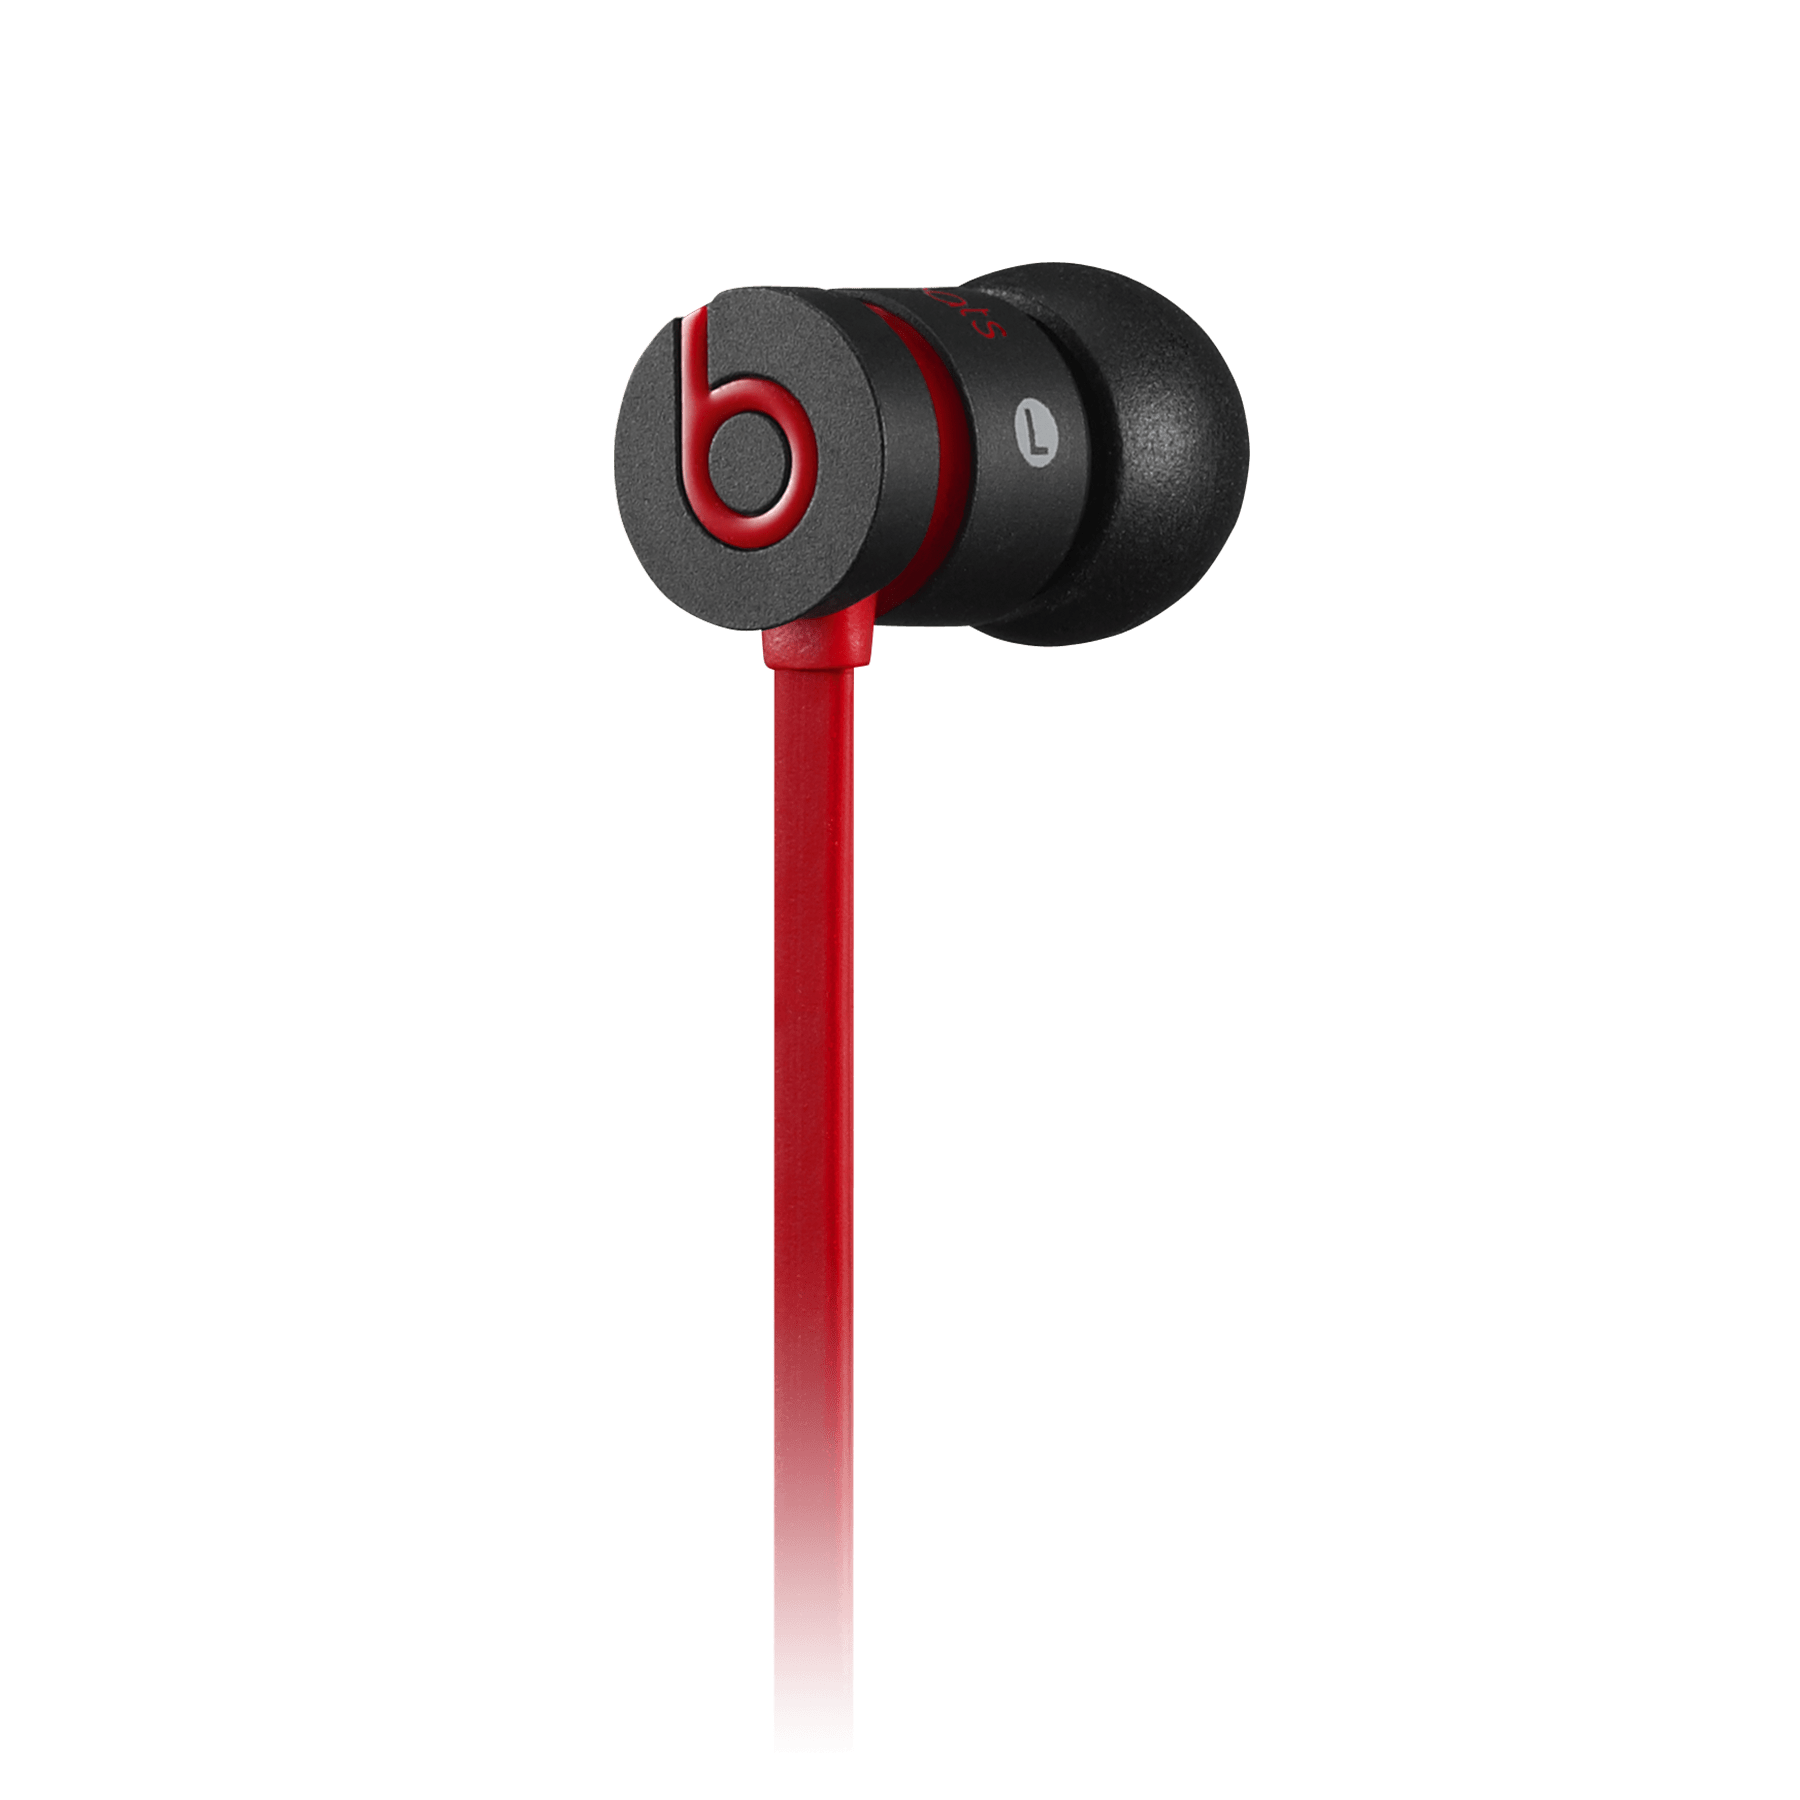 beats urbeats earphones with mic beats by dre. Black Bedroom Furniture Sets. Home Design Ideas